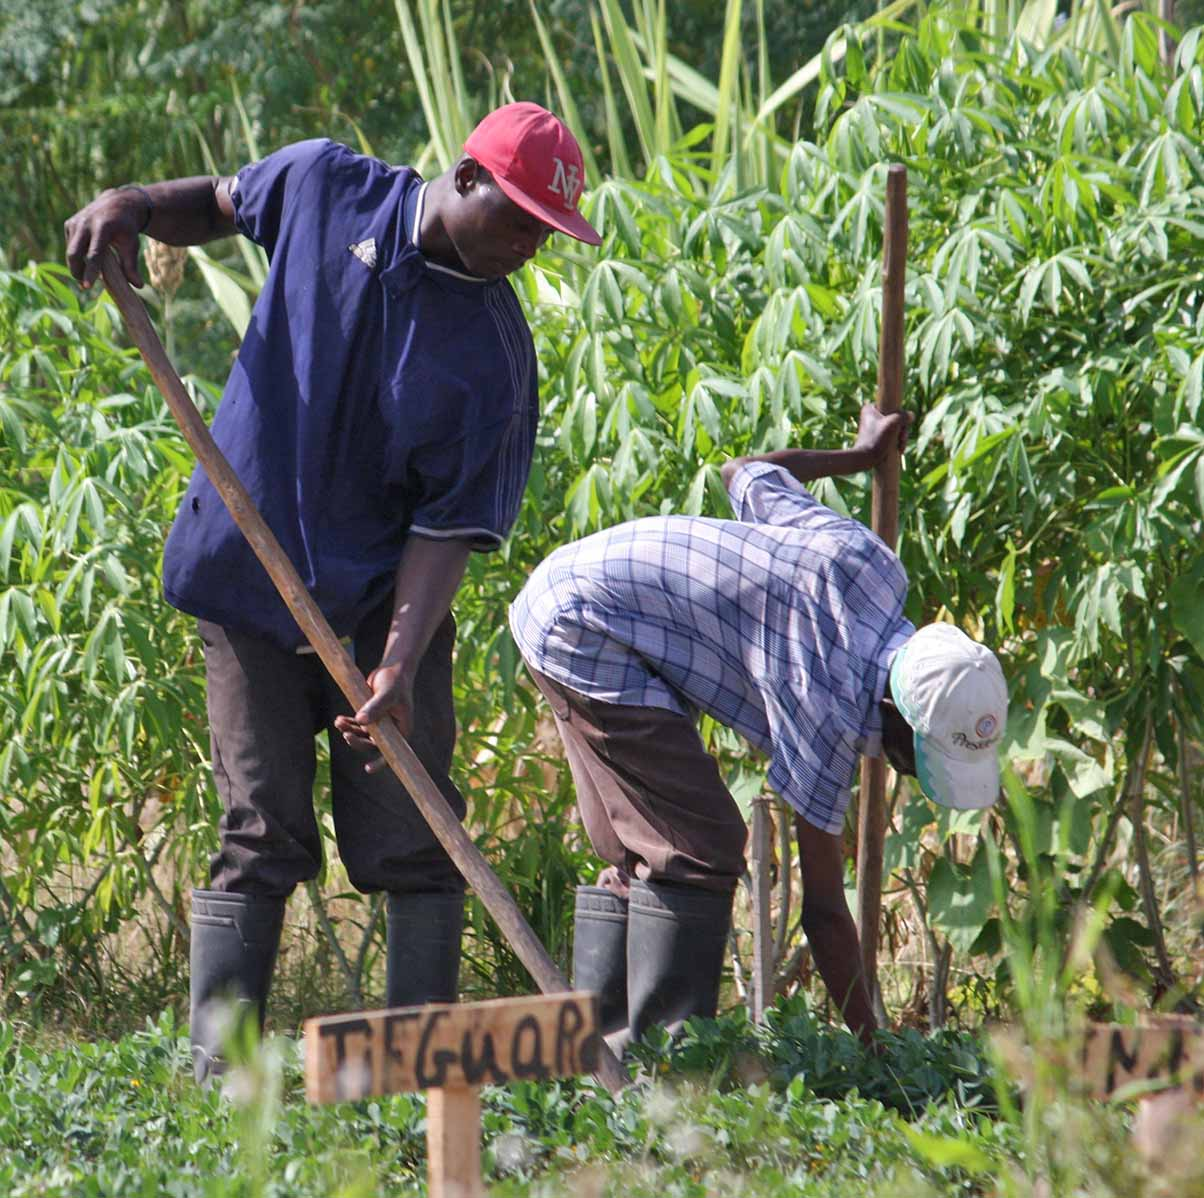 Haitian workers cultivate a plot of TifGuard peanuts on the Meds & Food for Kids experimental research plot just outside of Cap Haitien, Haiti.